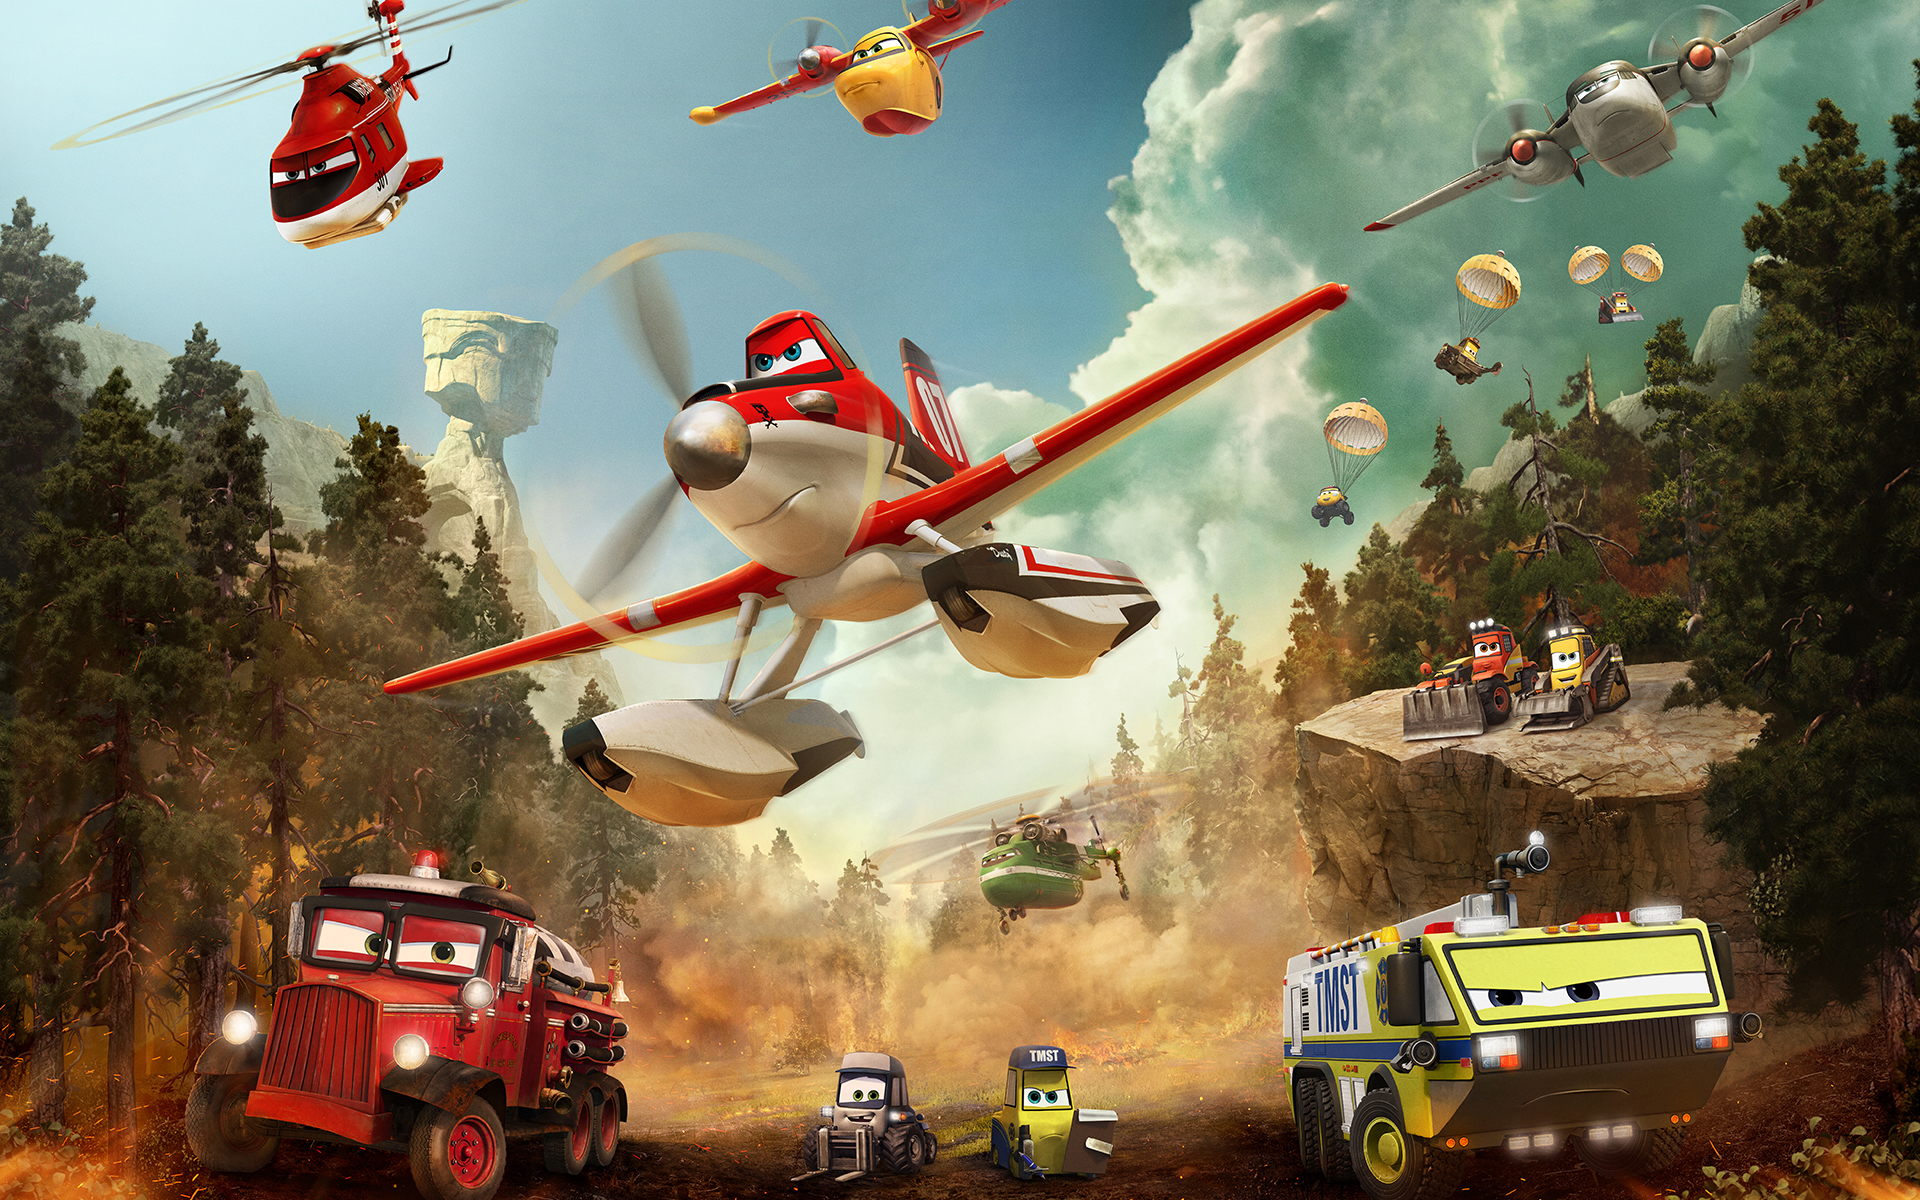 Planes Fire and Rescue Wallpaper